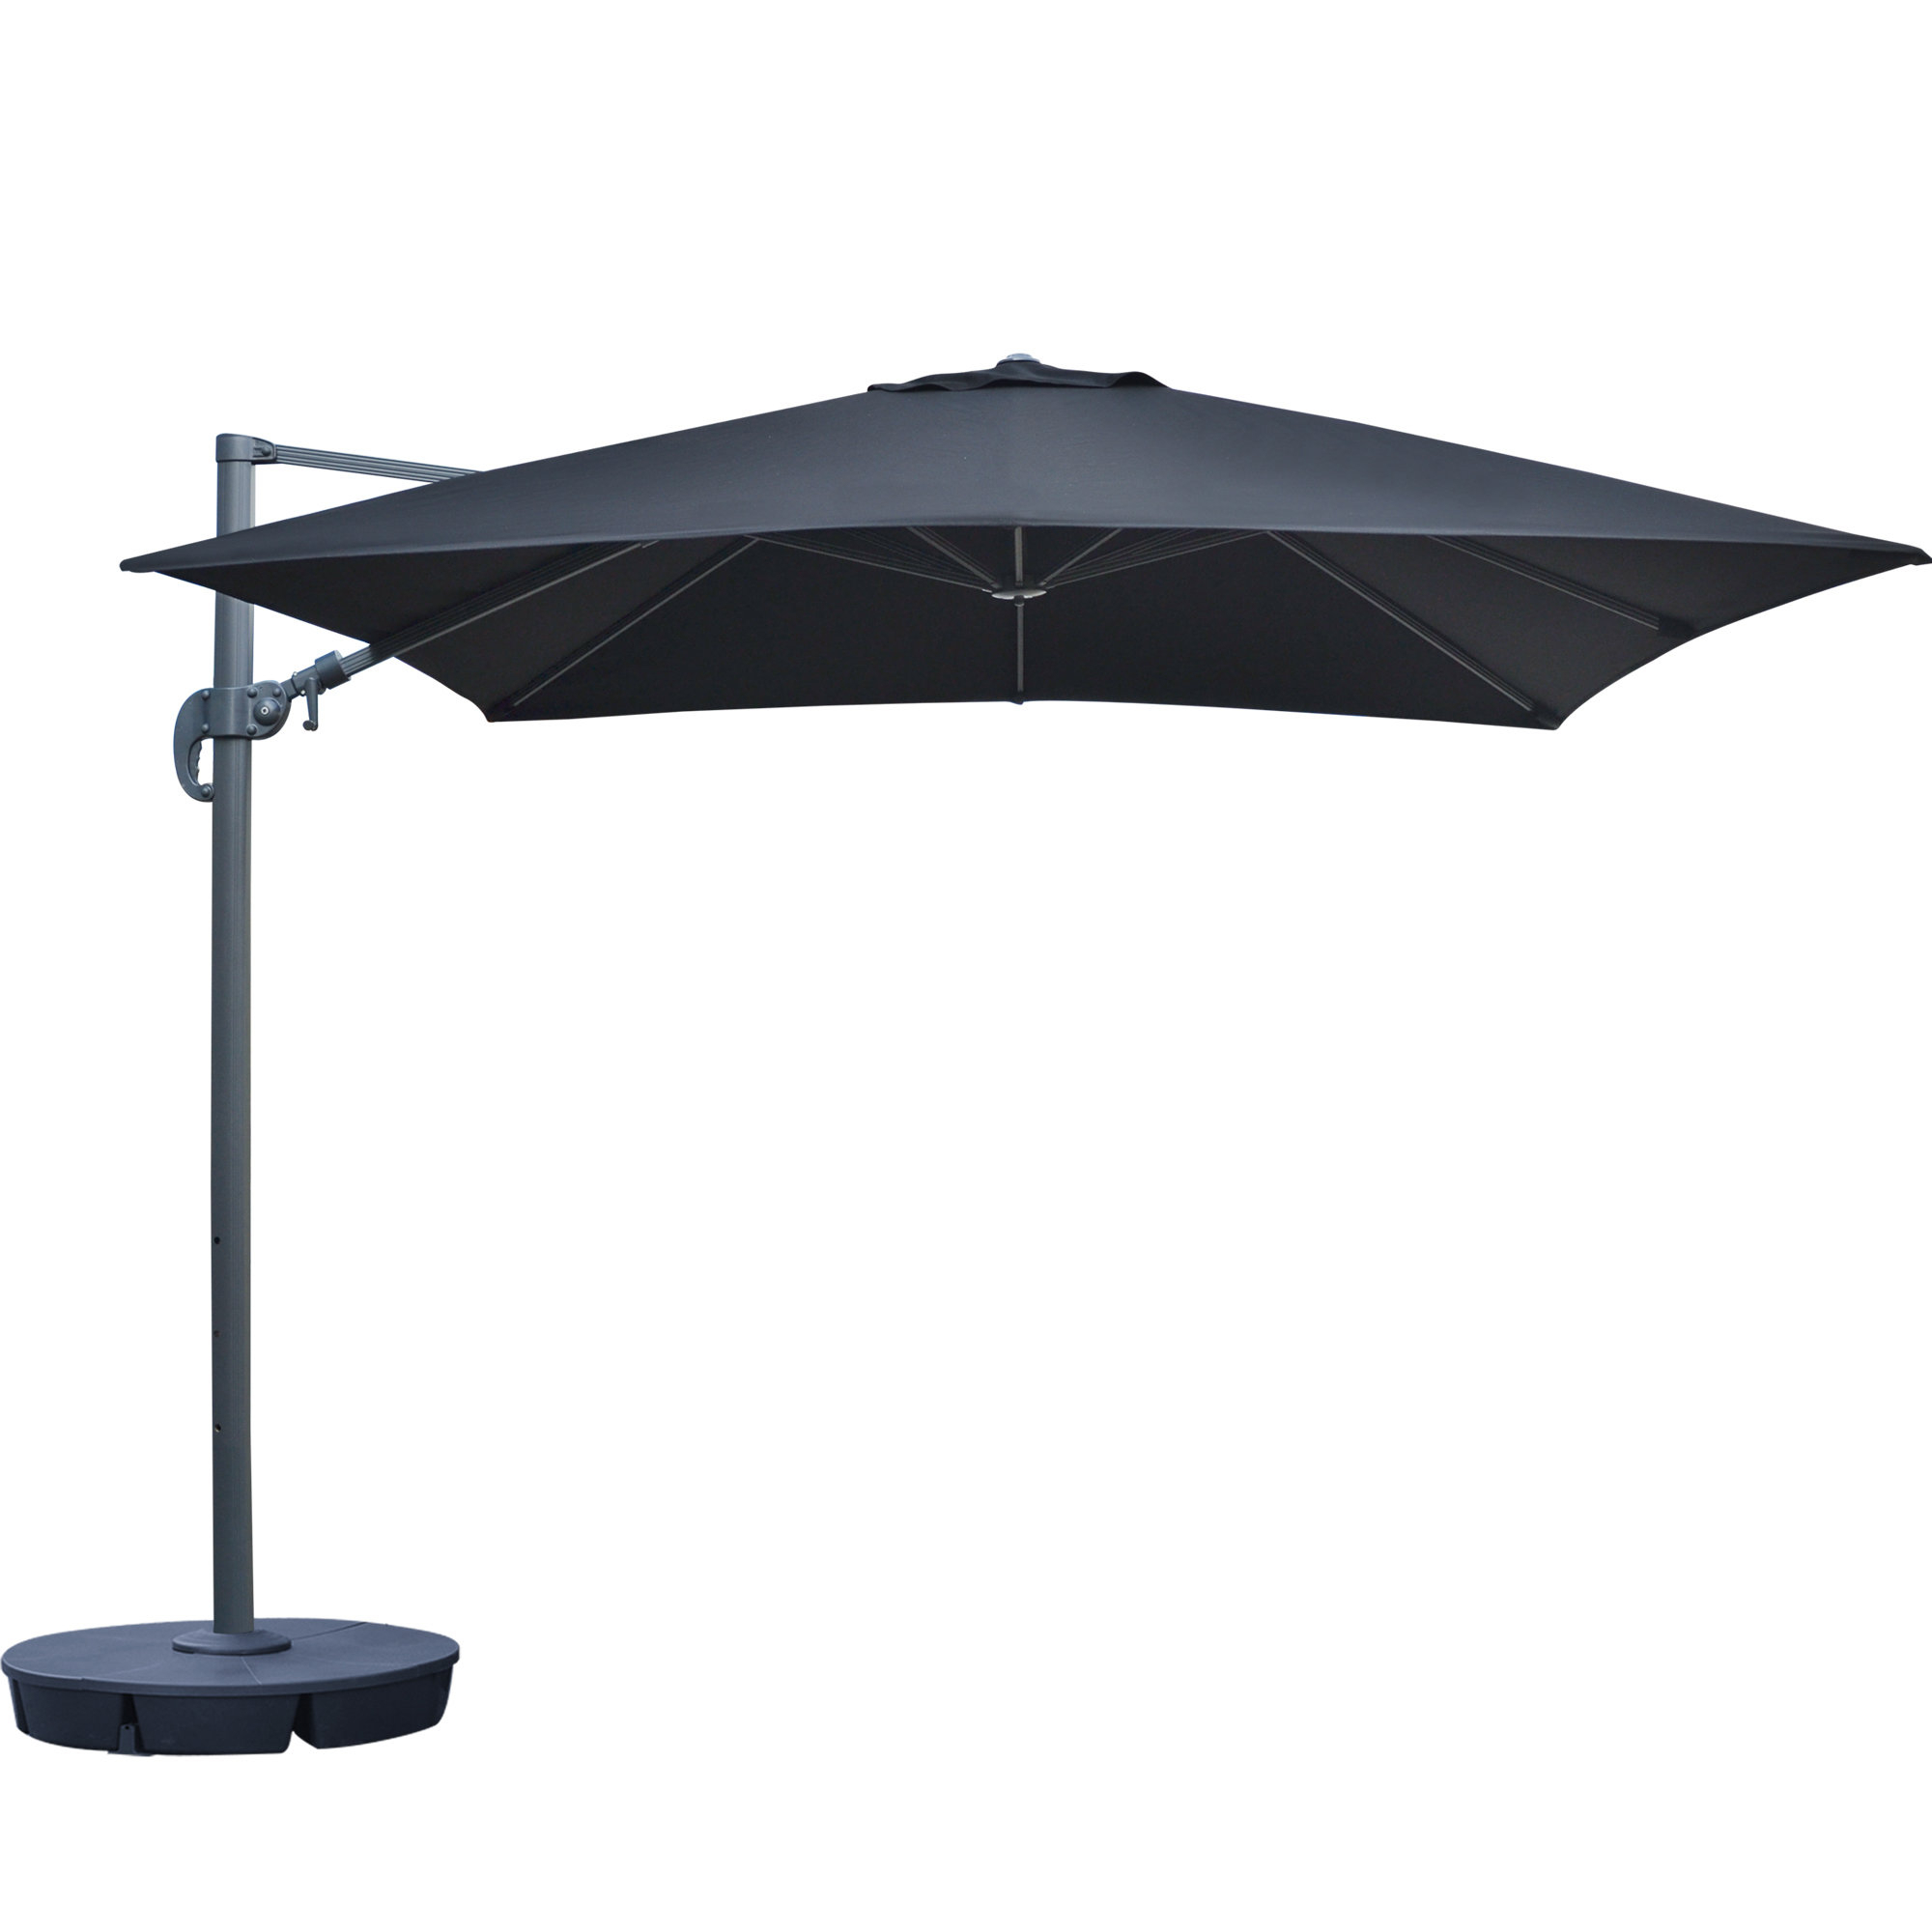 Ceylon Cantilever Sunbrella Umbrellas Intended For 2020 Freeport 10' Cantilever Sunbrella Umbrella (View 10 of 20)